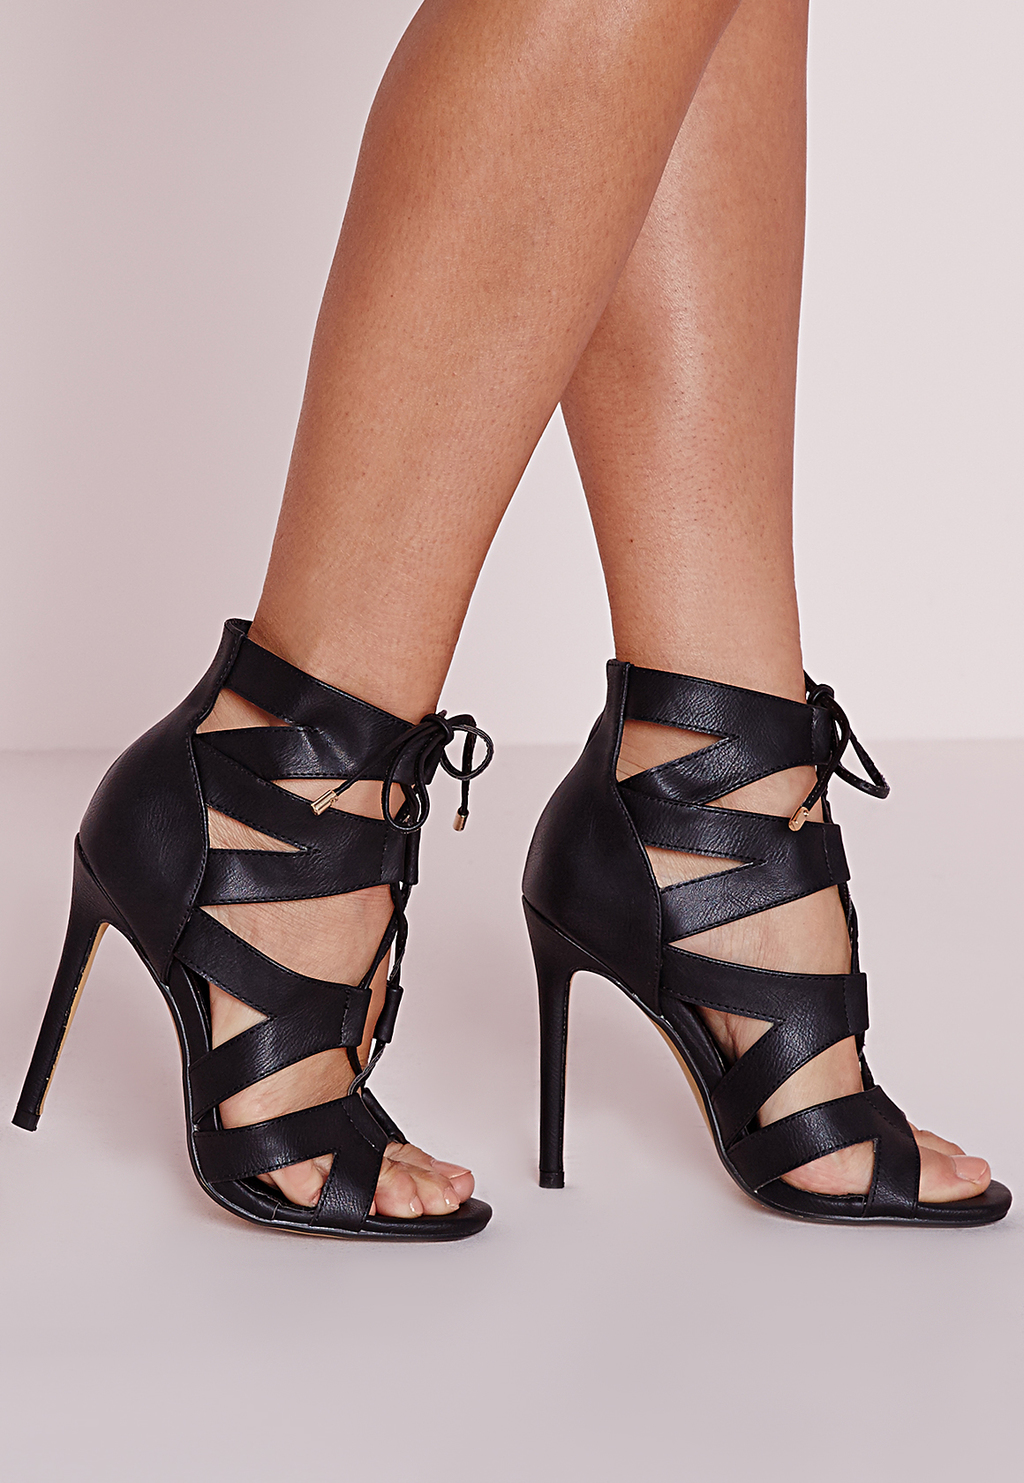 Cut Out Lace Up Gladiator Heels Black, Black - predominant colour: black; occasions: evening; material: faux leather; heel: stiletto; toe: open toe/peeptoe; style: gladiators; finish: plain; pattern: plain; heel height: very high; season: s/s 2016; wardrobe: event